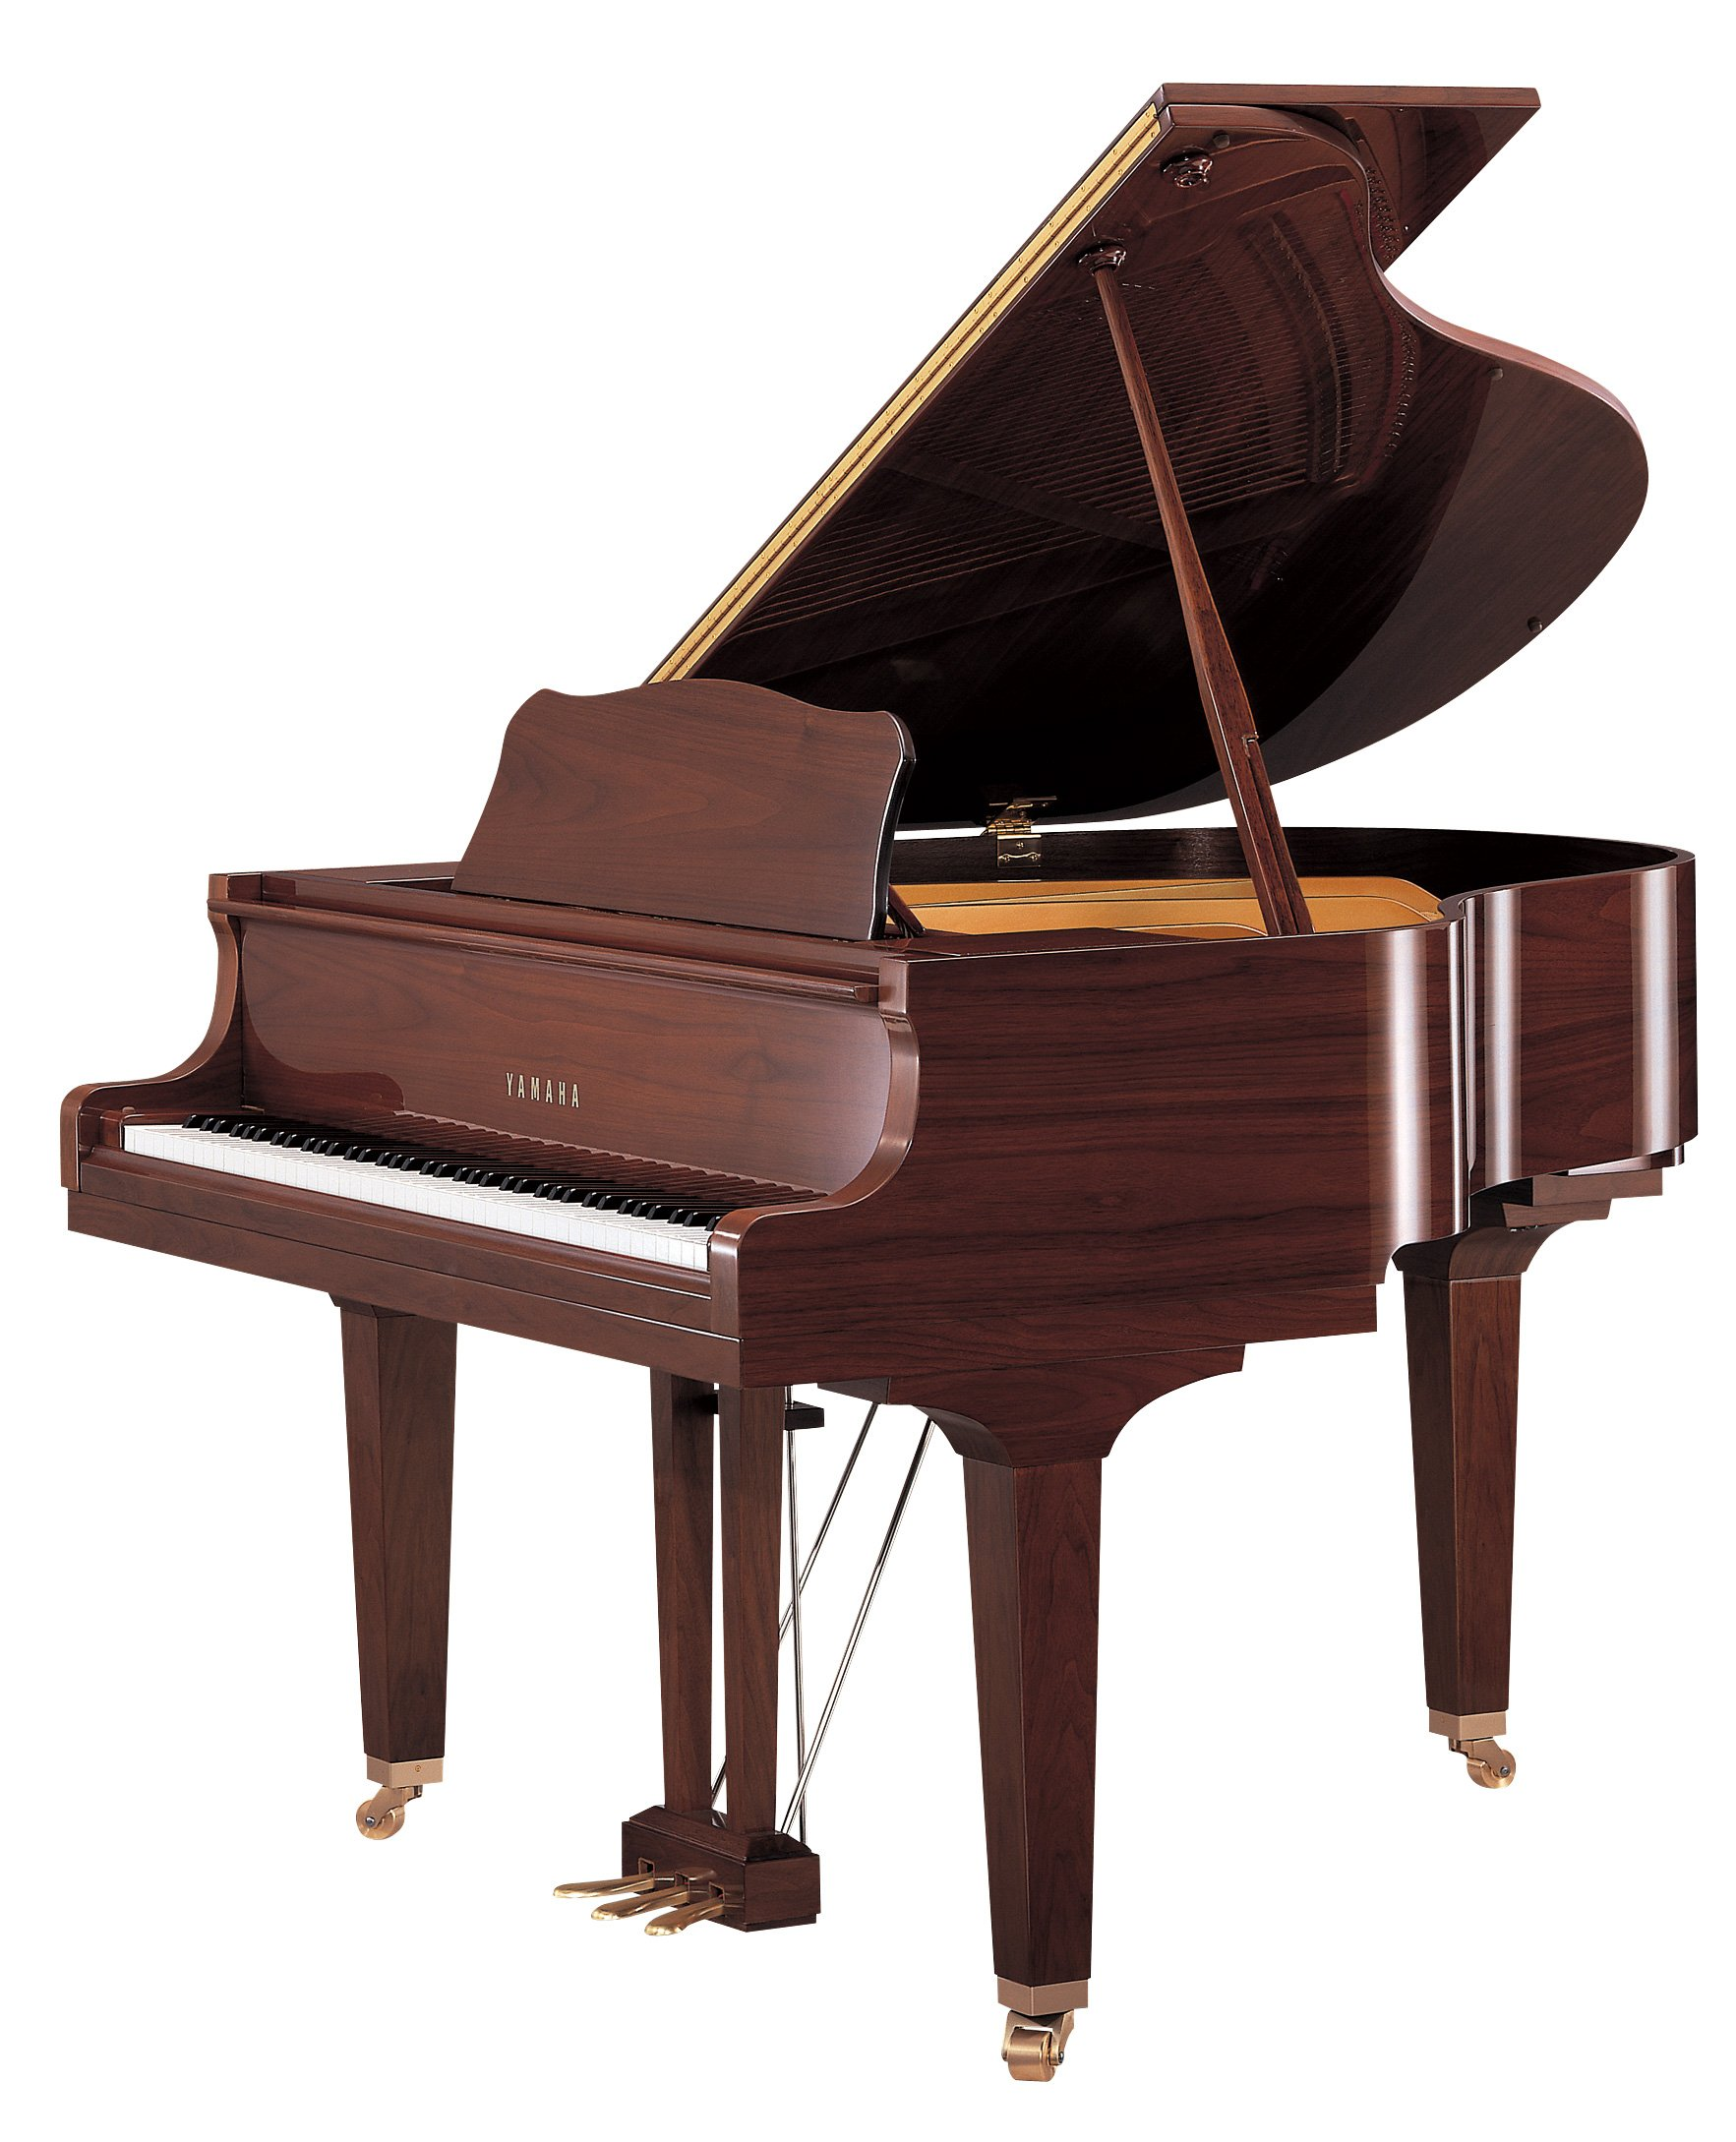 yamaha gb1 baby grand piano at yamaha piano specialists